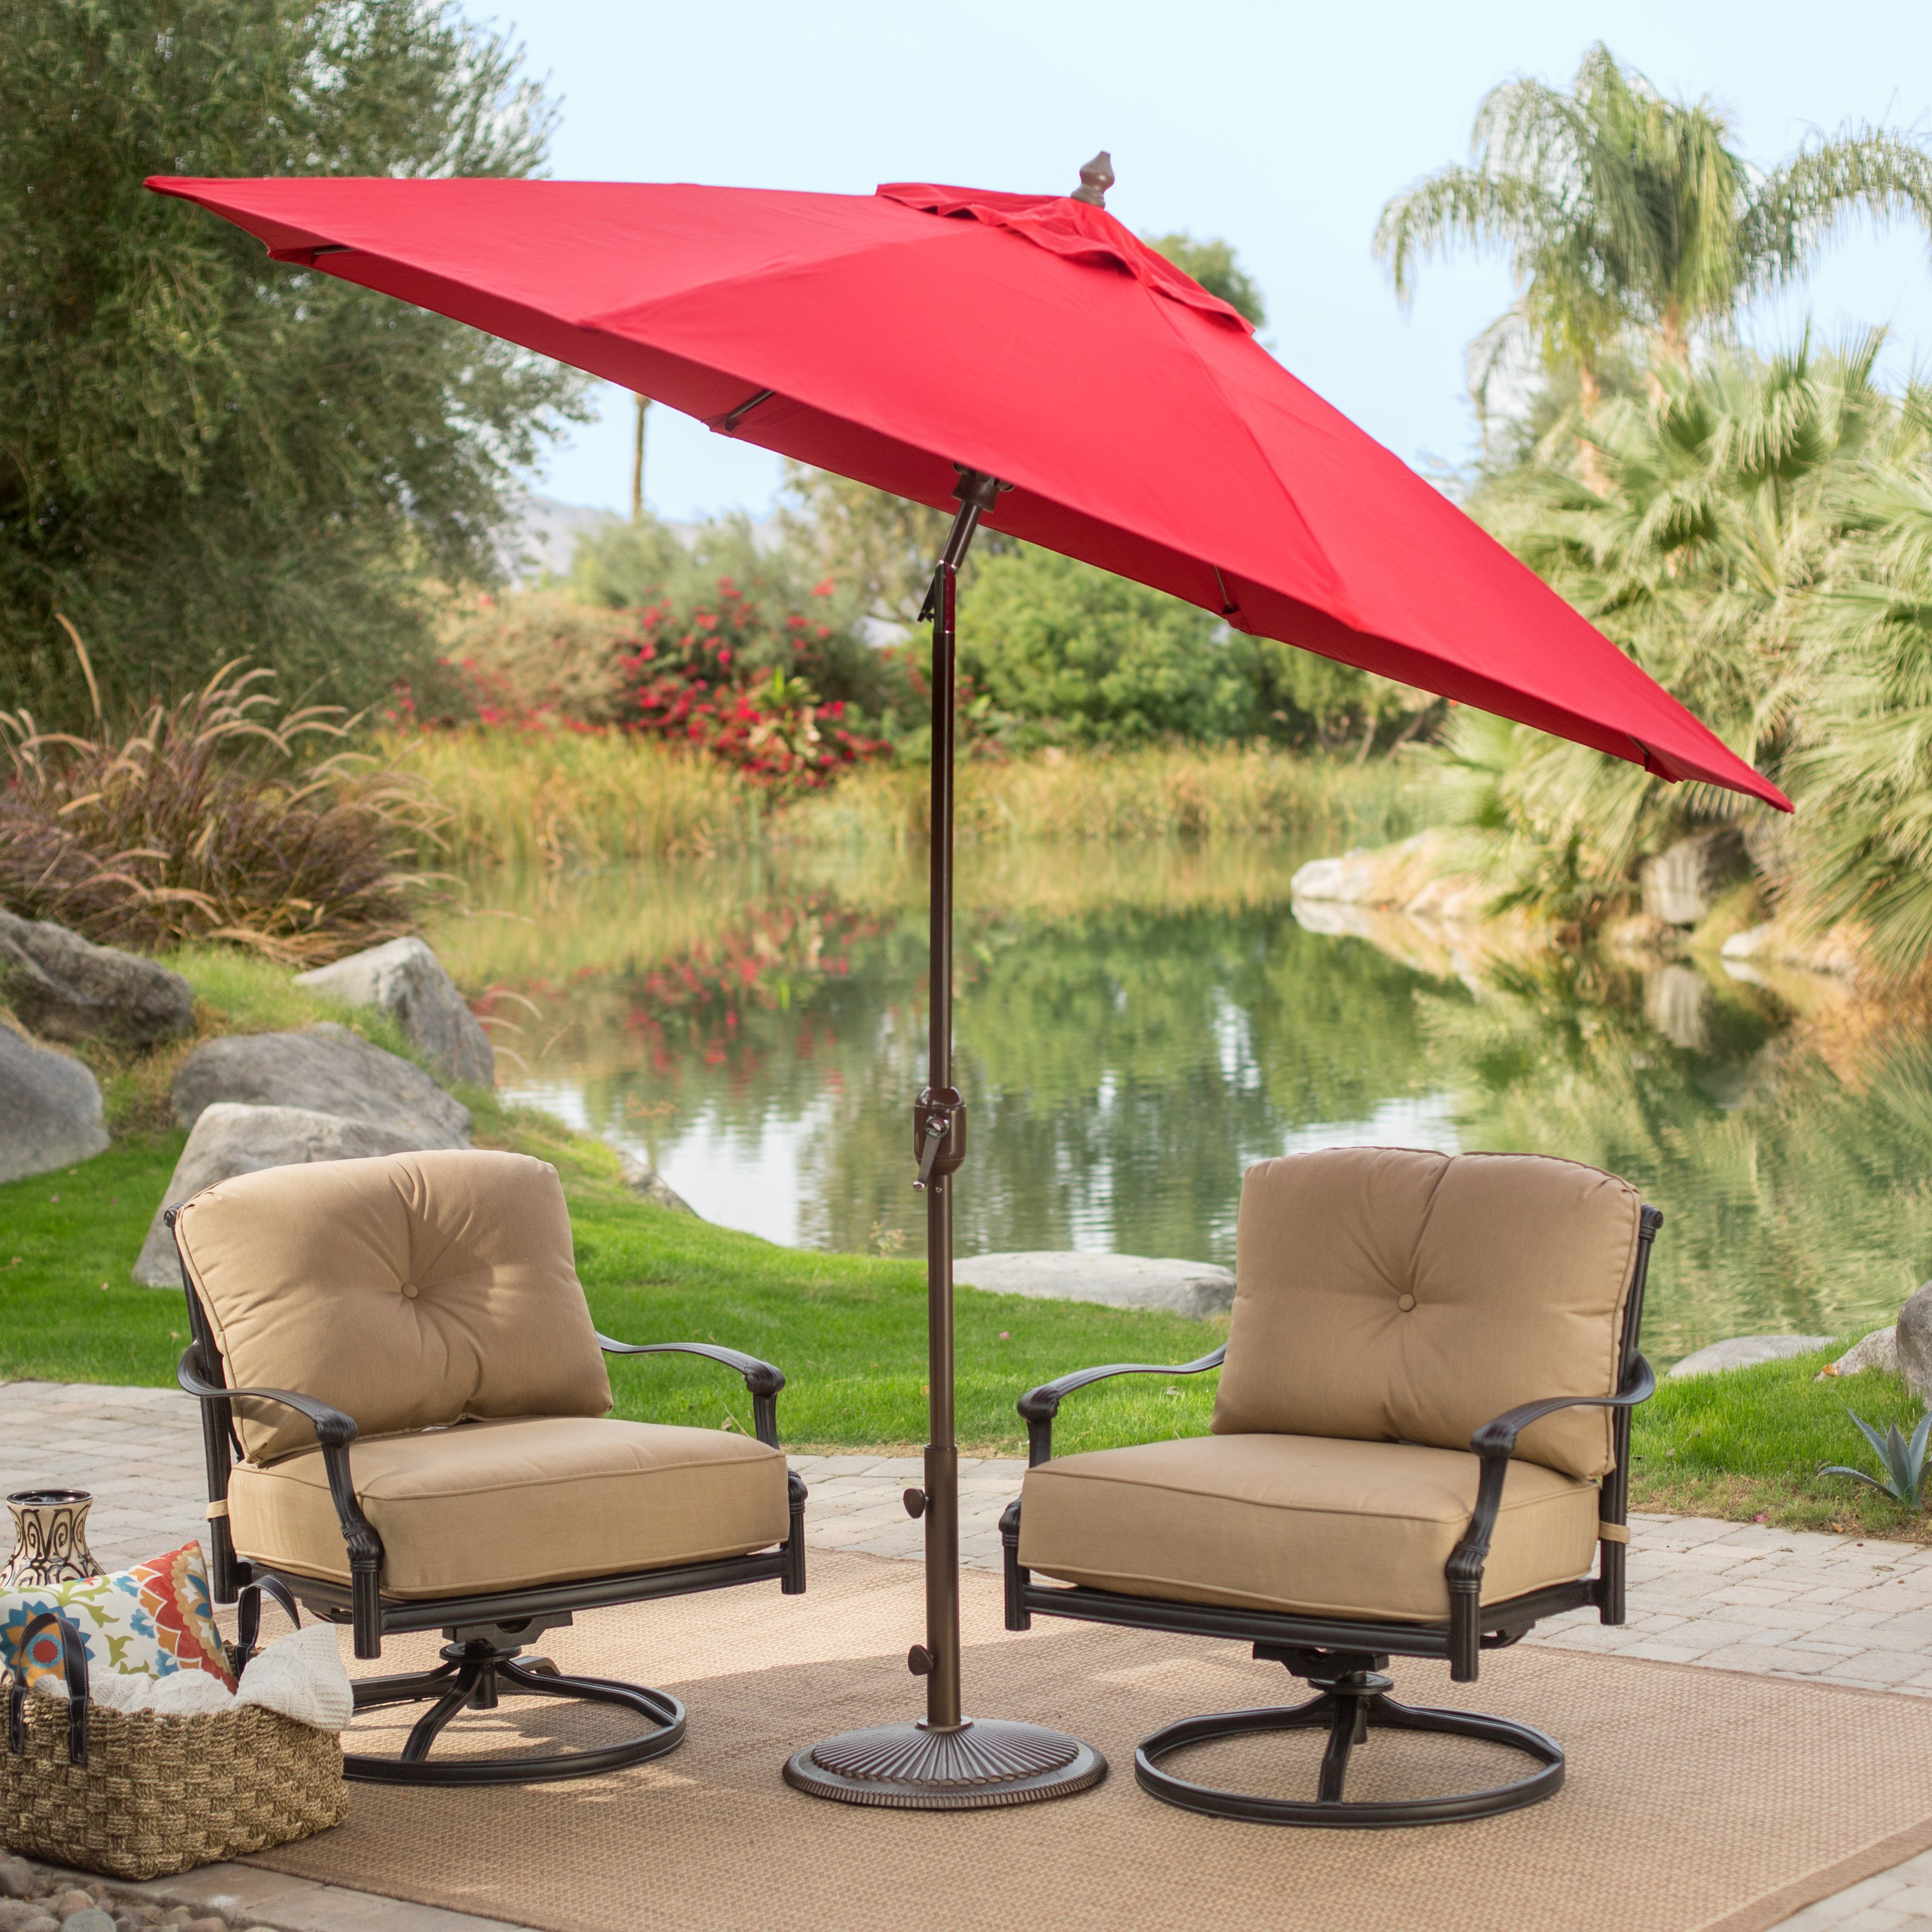 praiano outdoor product img occasional occ chair umbrella do patio world wood market thumb